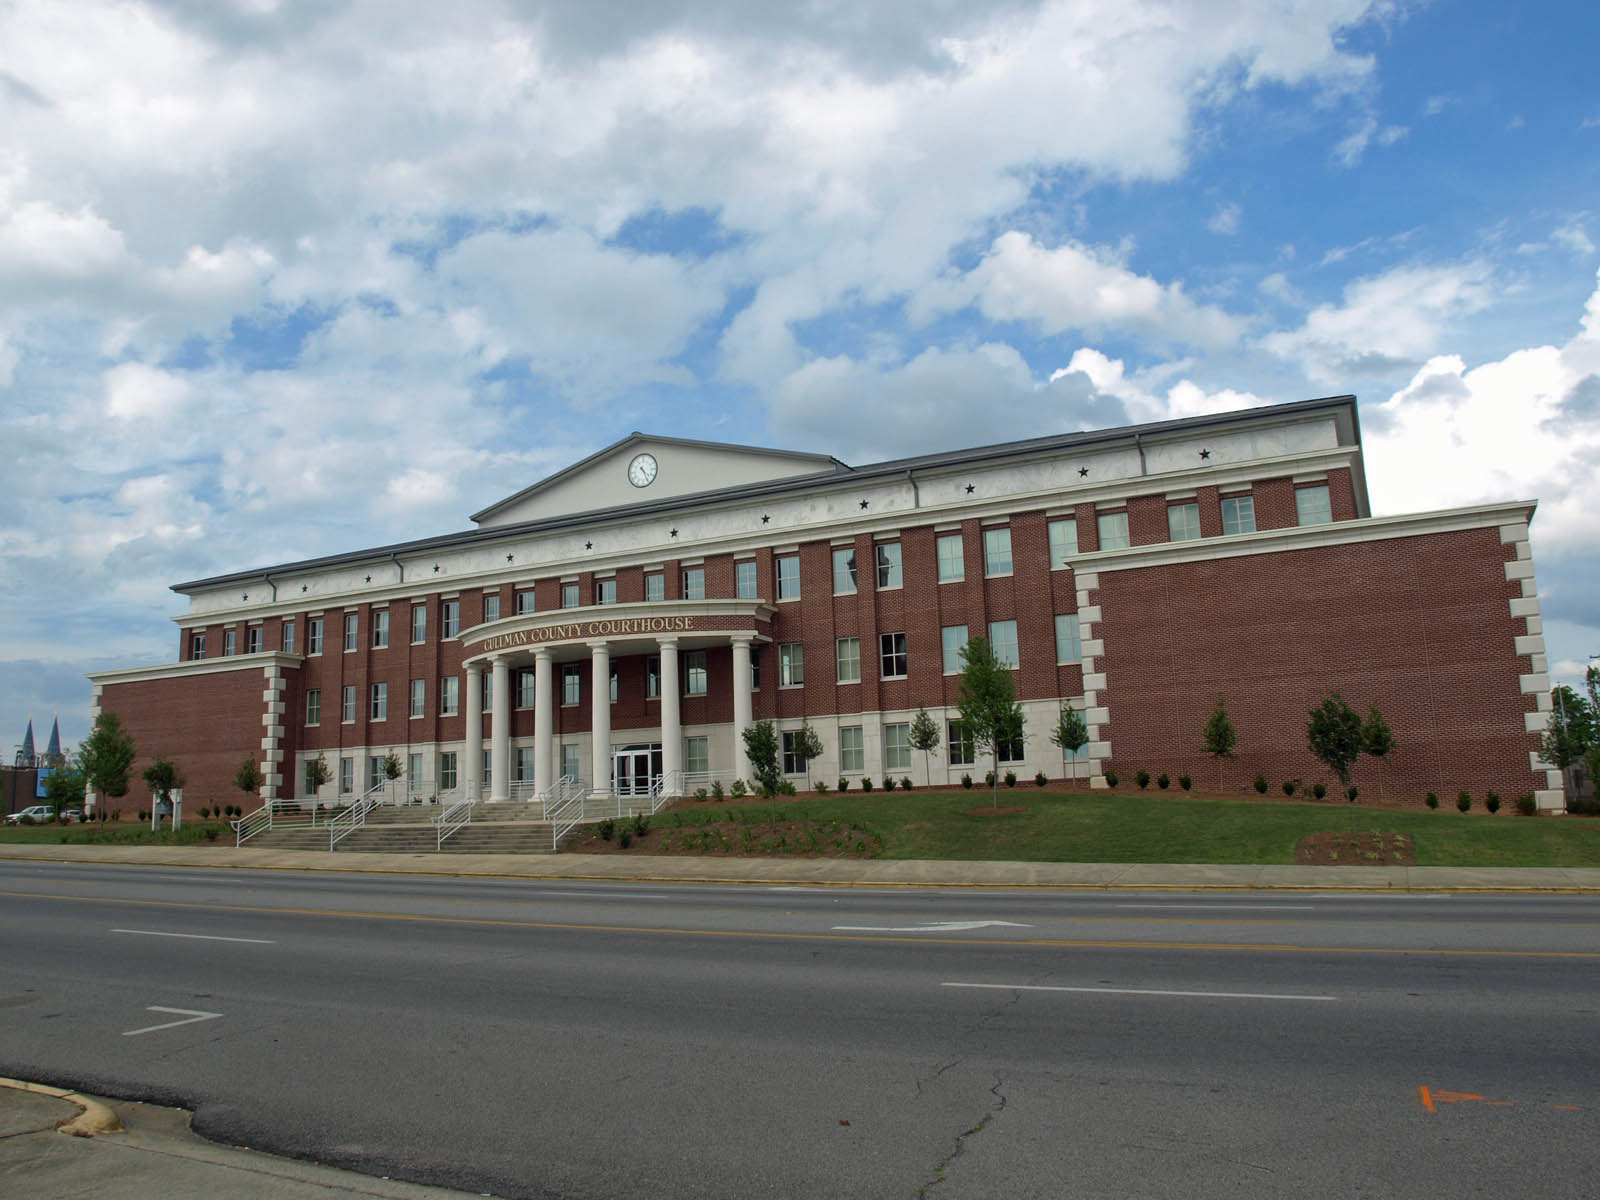 File:Cullman County Courthouse May 2013 2.jpg - Wikimedia Commonsbalance of cullman county